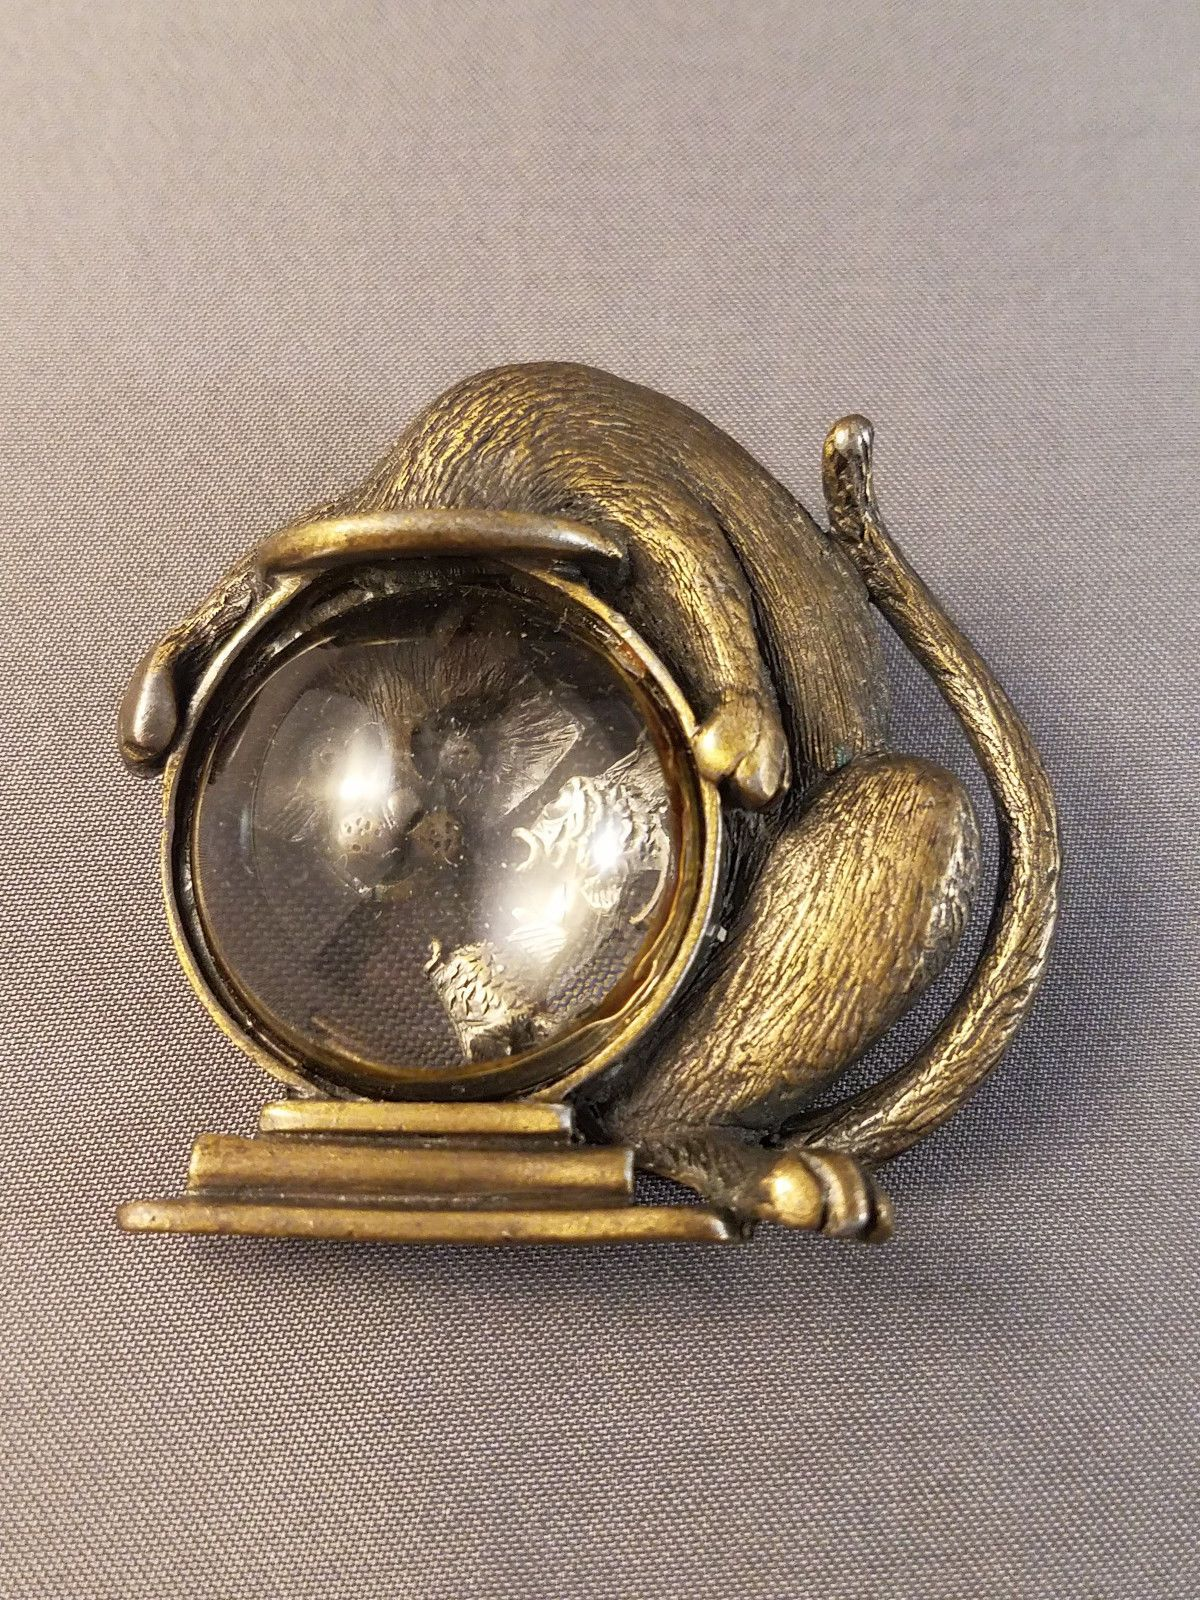 Vintage JJ Cat Looking into Fishbowl Brooch, with a clear Lucite fishbowl. Measures about 6 cm by 6.5 cm